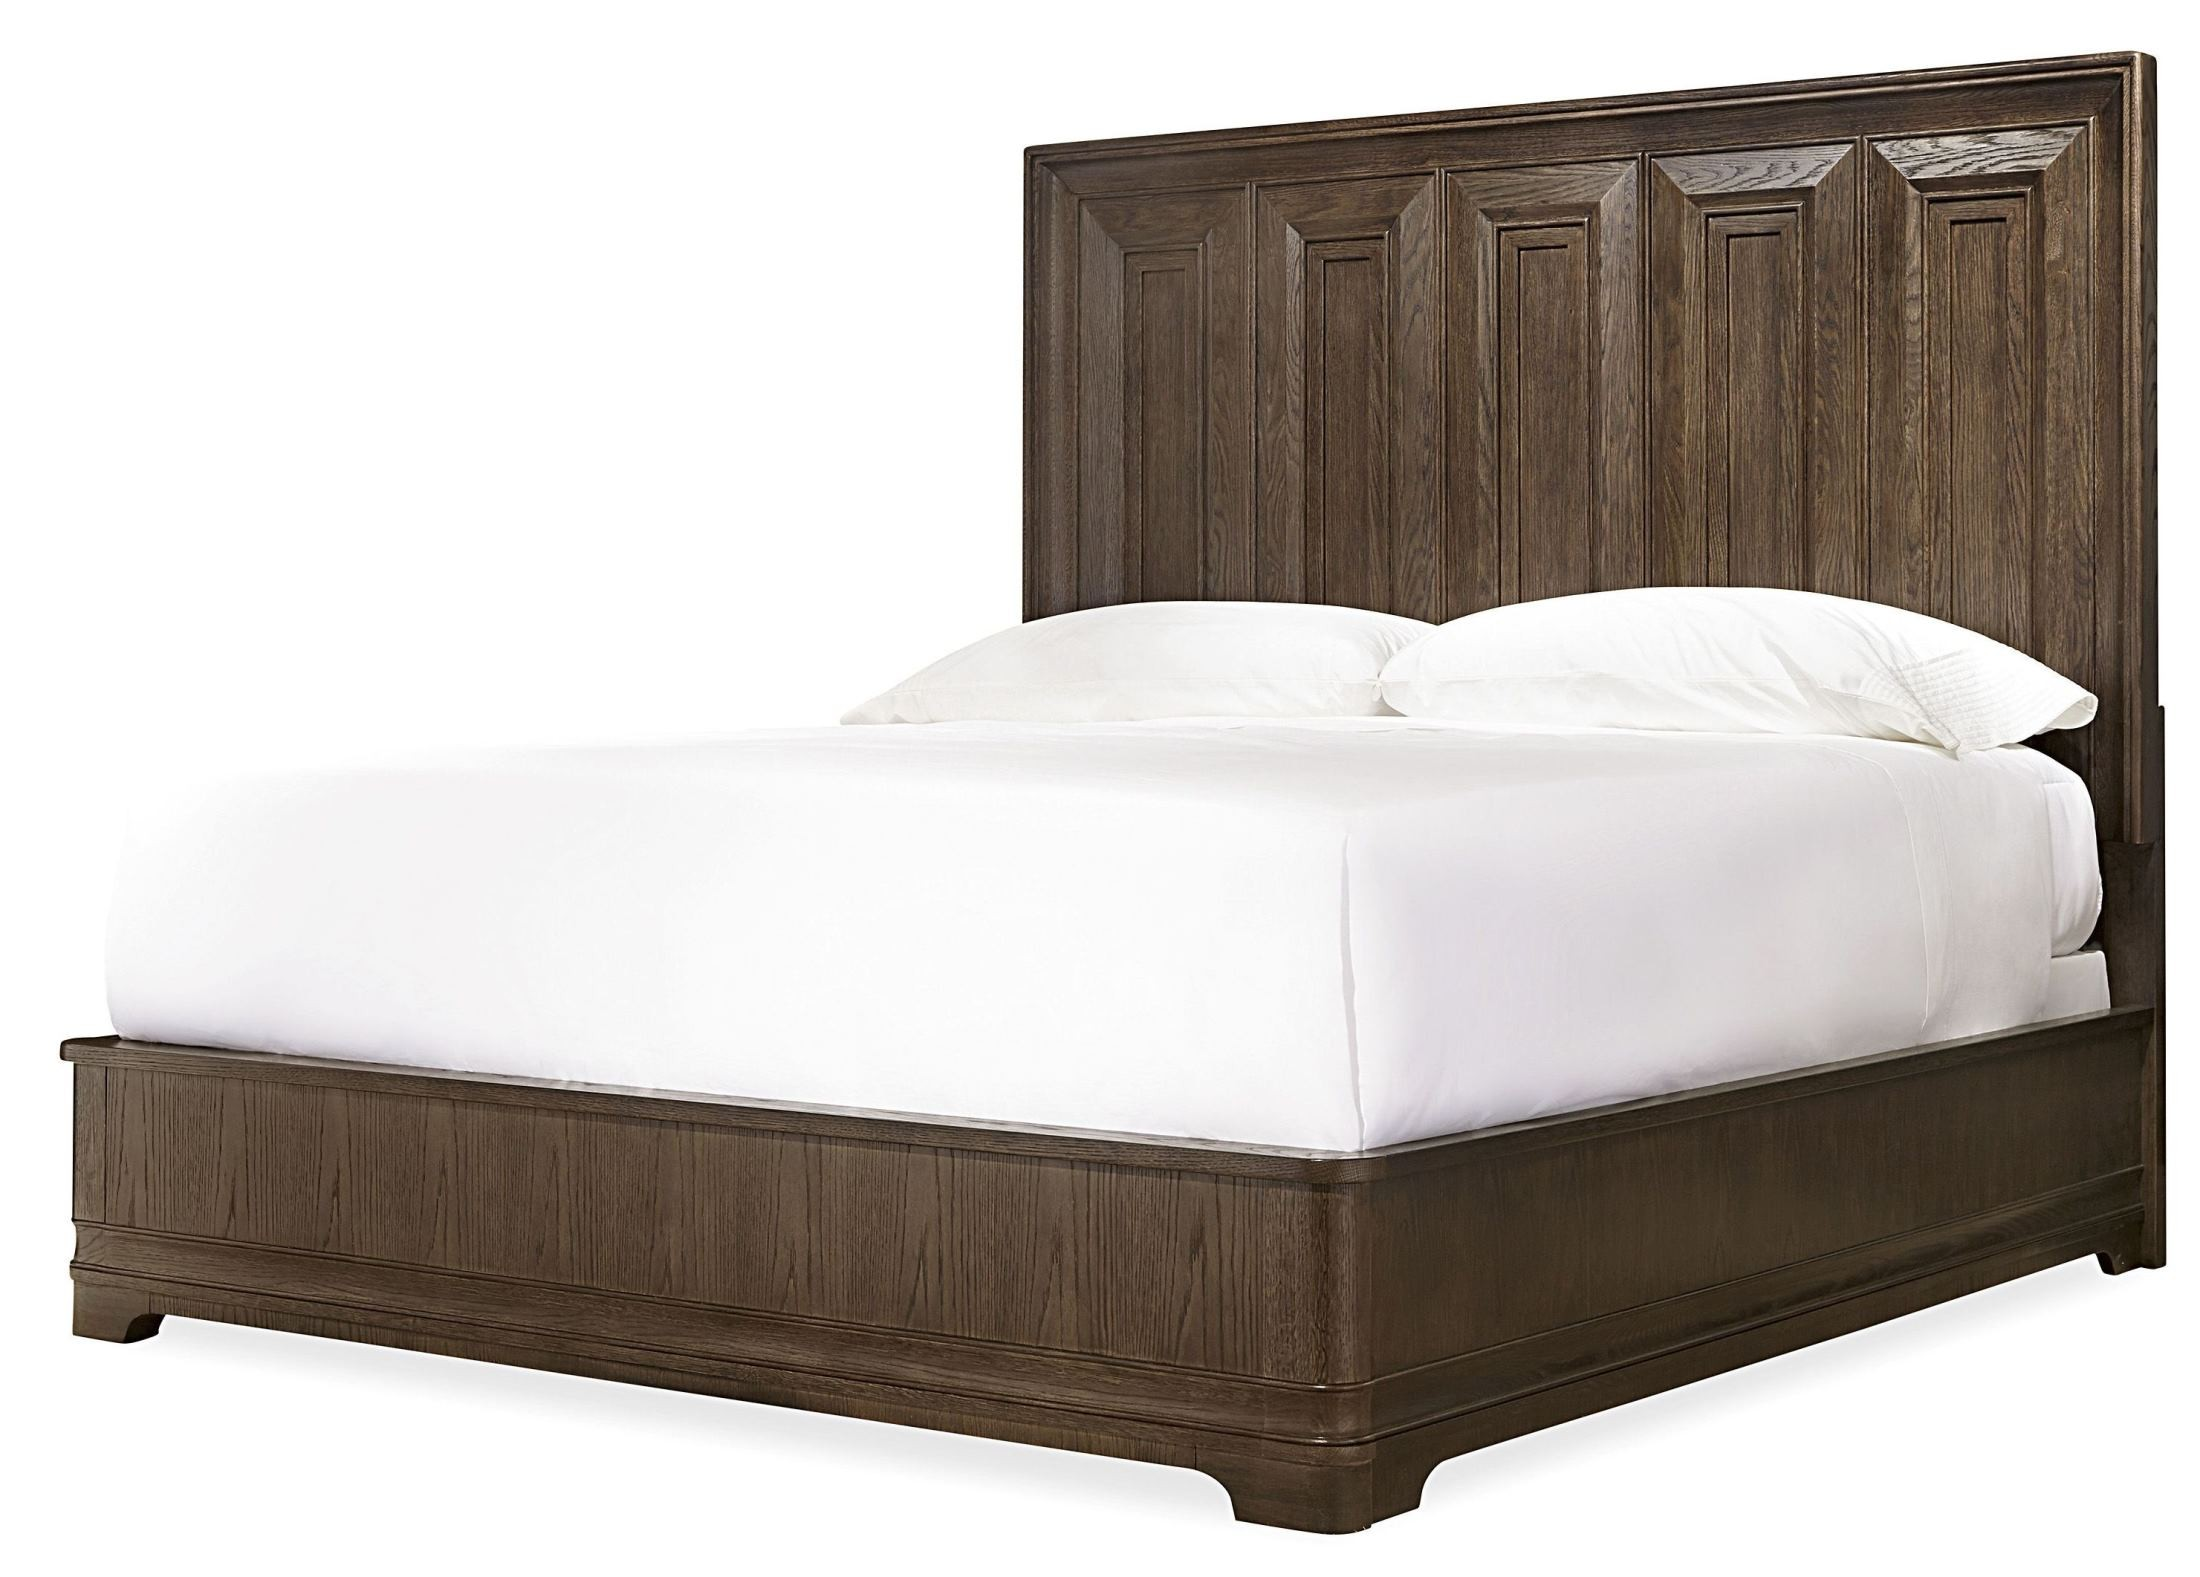 California cal king king platform bed from universal California king platform bed